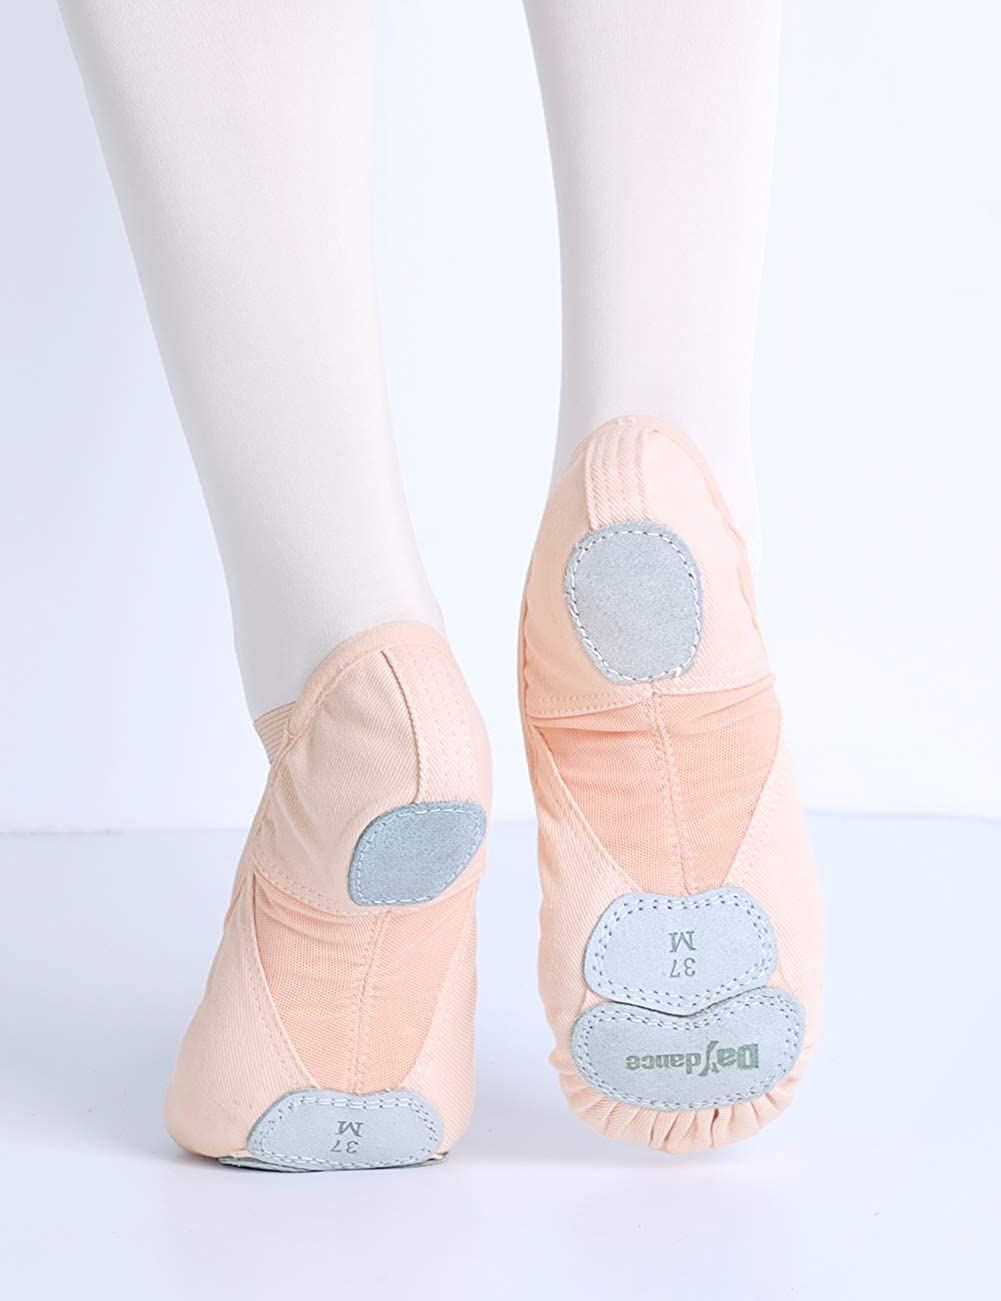 Professional Stretch Canvas Yoga Dance Slippers//Flats Three Pieces Leather Sole Ballet Shoes for Women